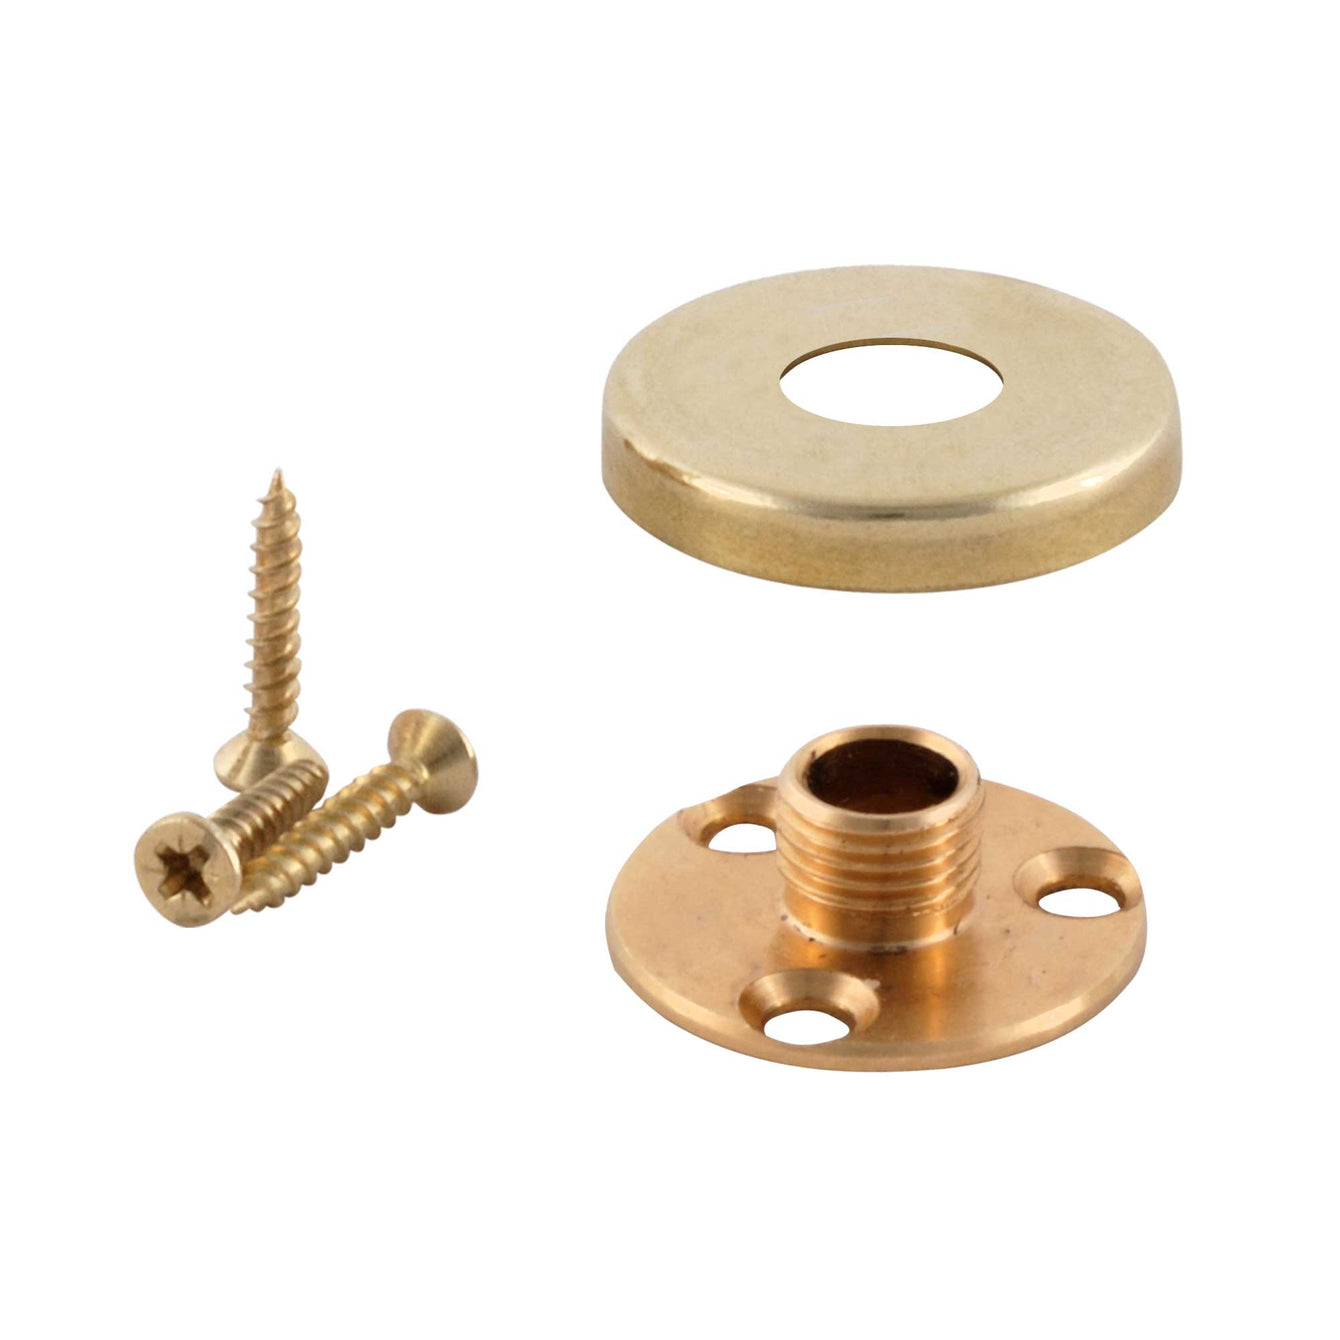 ElekTek Brass Back Plate Kit - 10mm Male Thread and Screws with Cover - For use with E27 10mm Lampholder Antique Brass